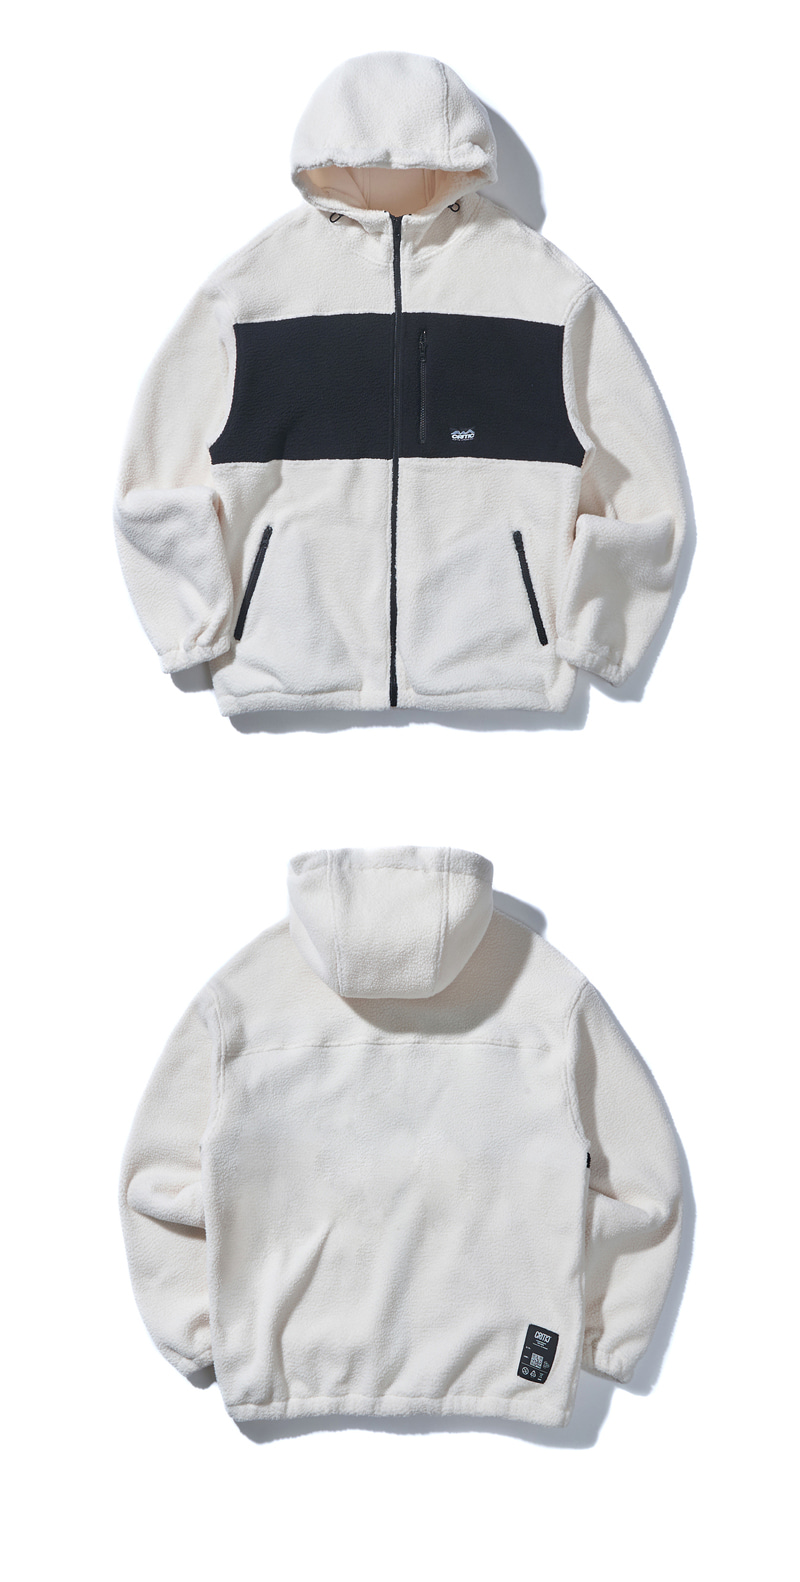 HOODED FLEECE JACKET(CREAM)_CTONIJK02UY5